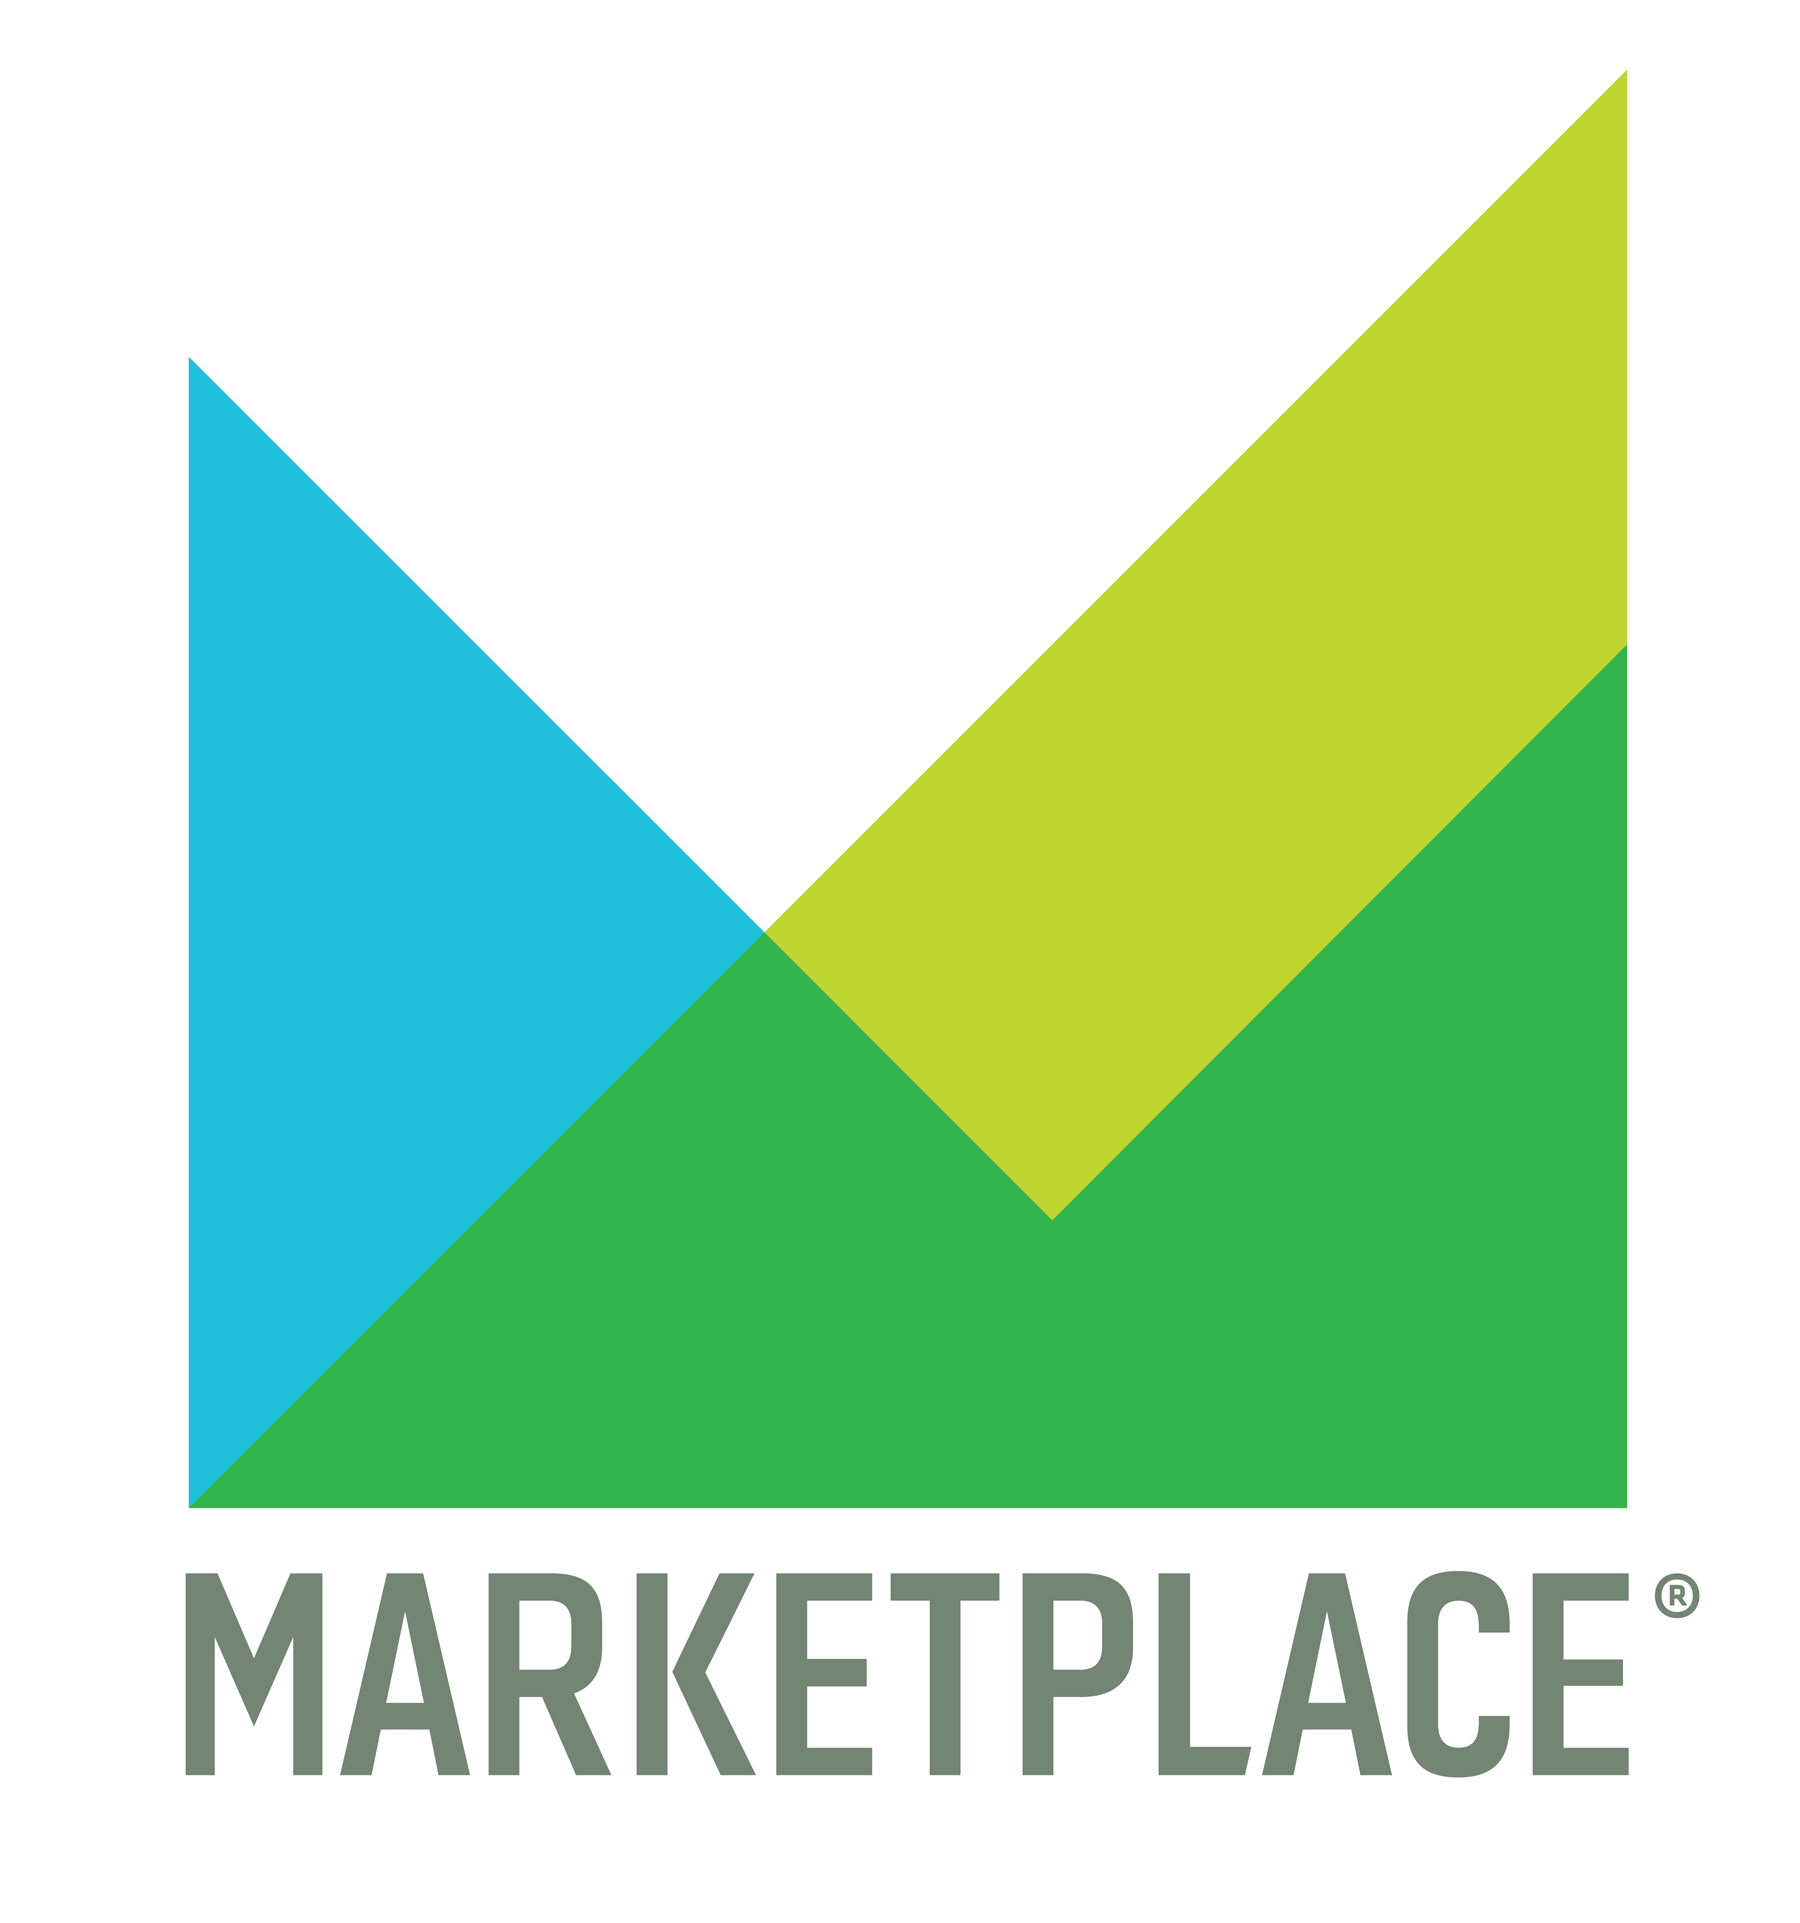 Silk road marketplace logo